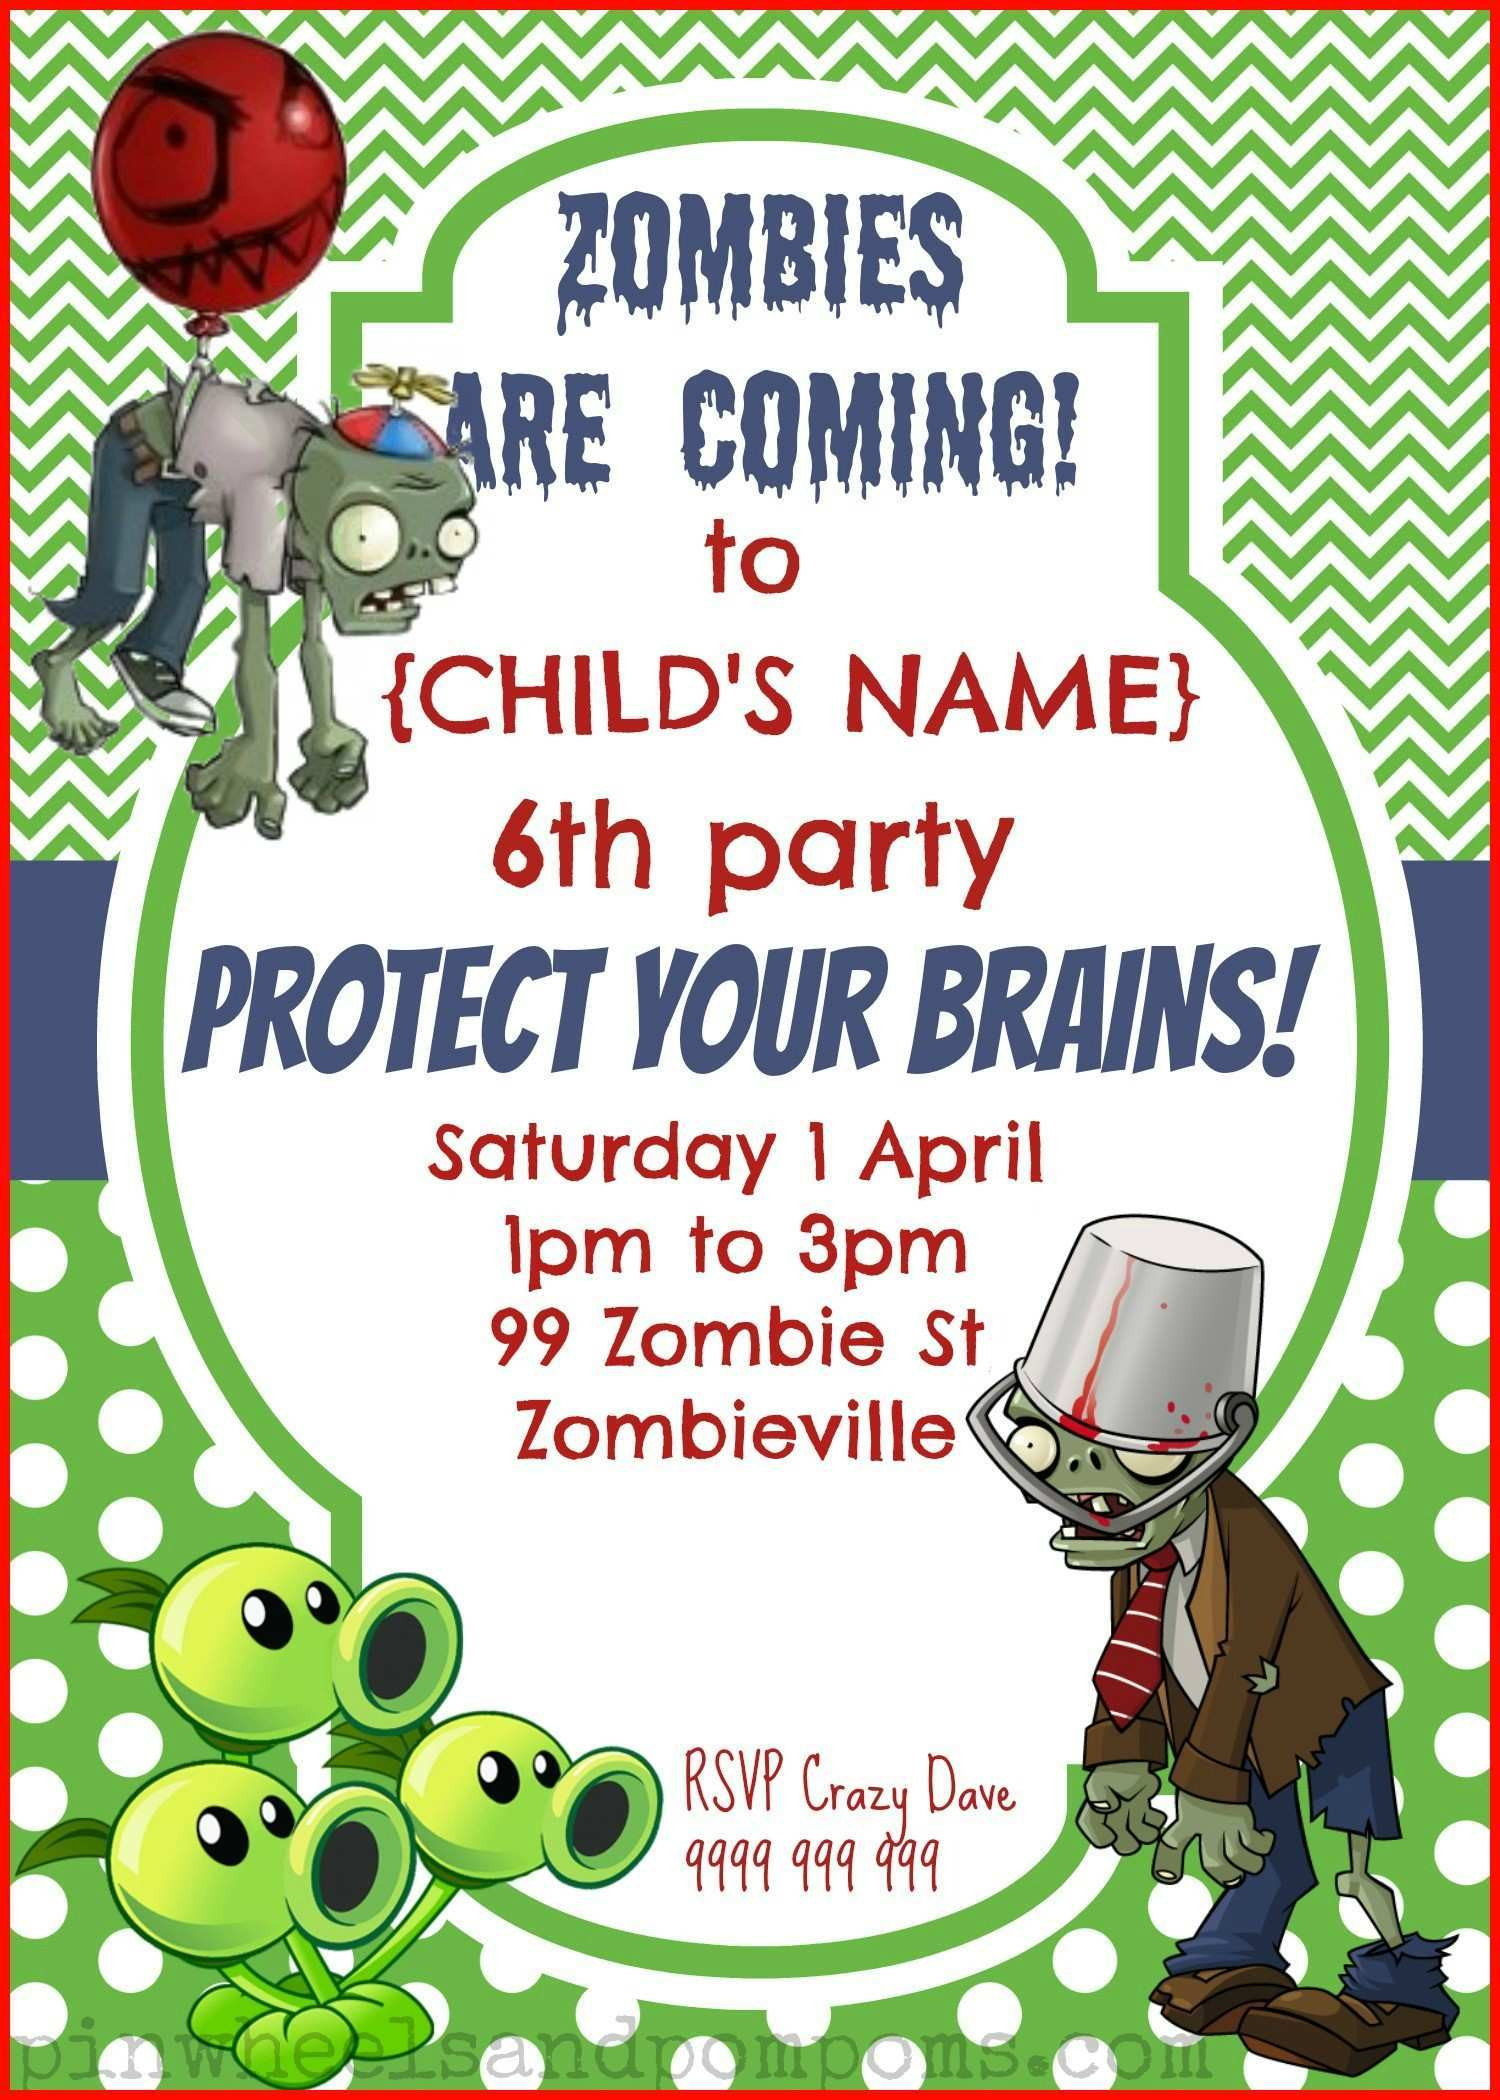 43 Blank Zombie Birthday Invitation Template For Free for Zombie Birthday Invitation Template